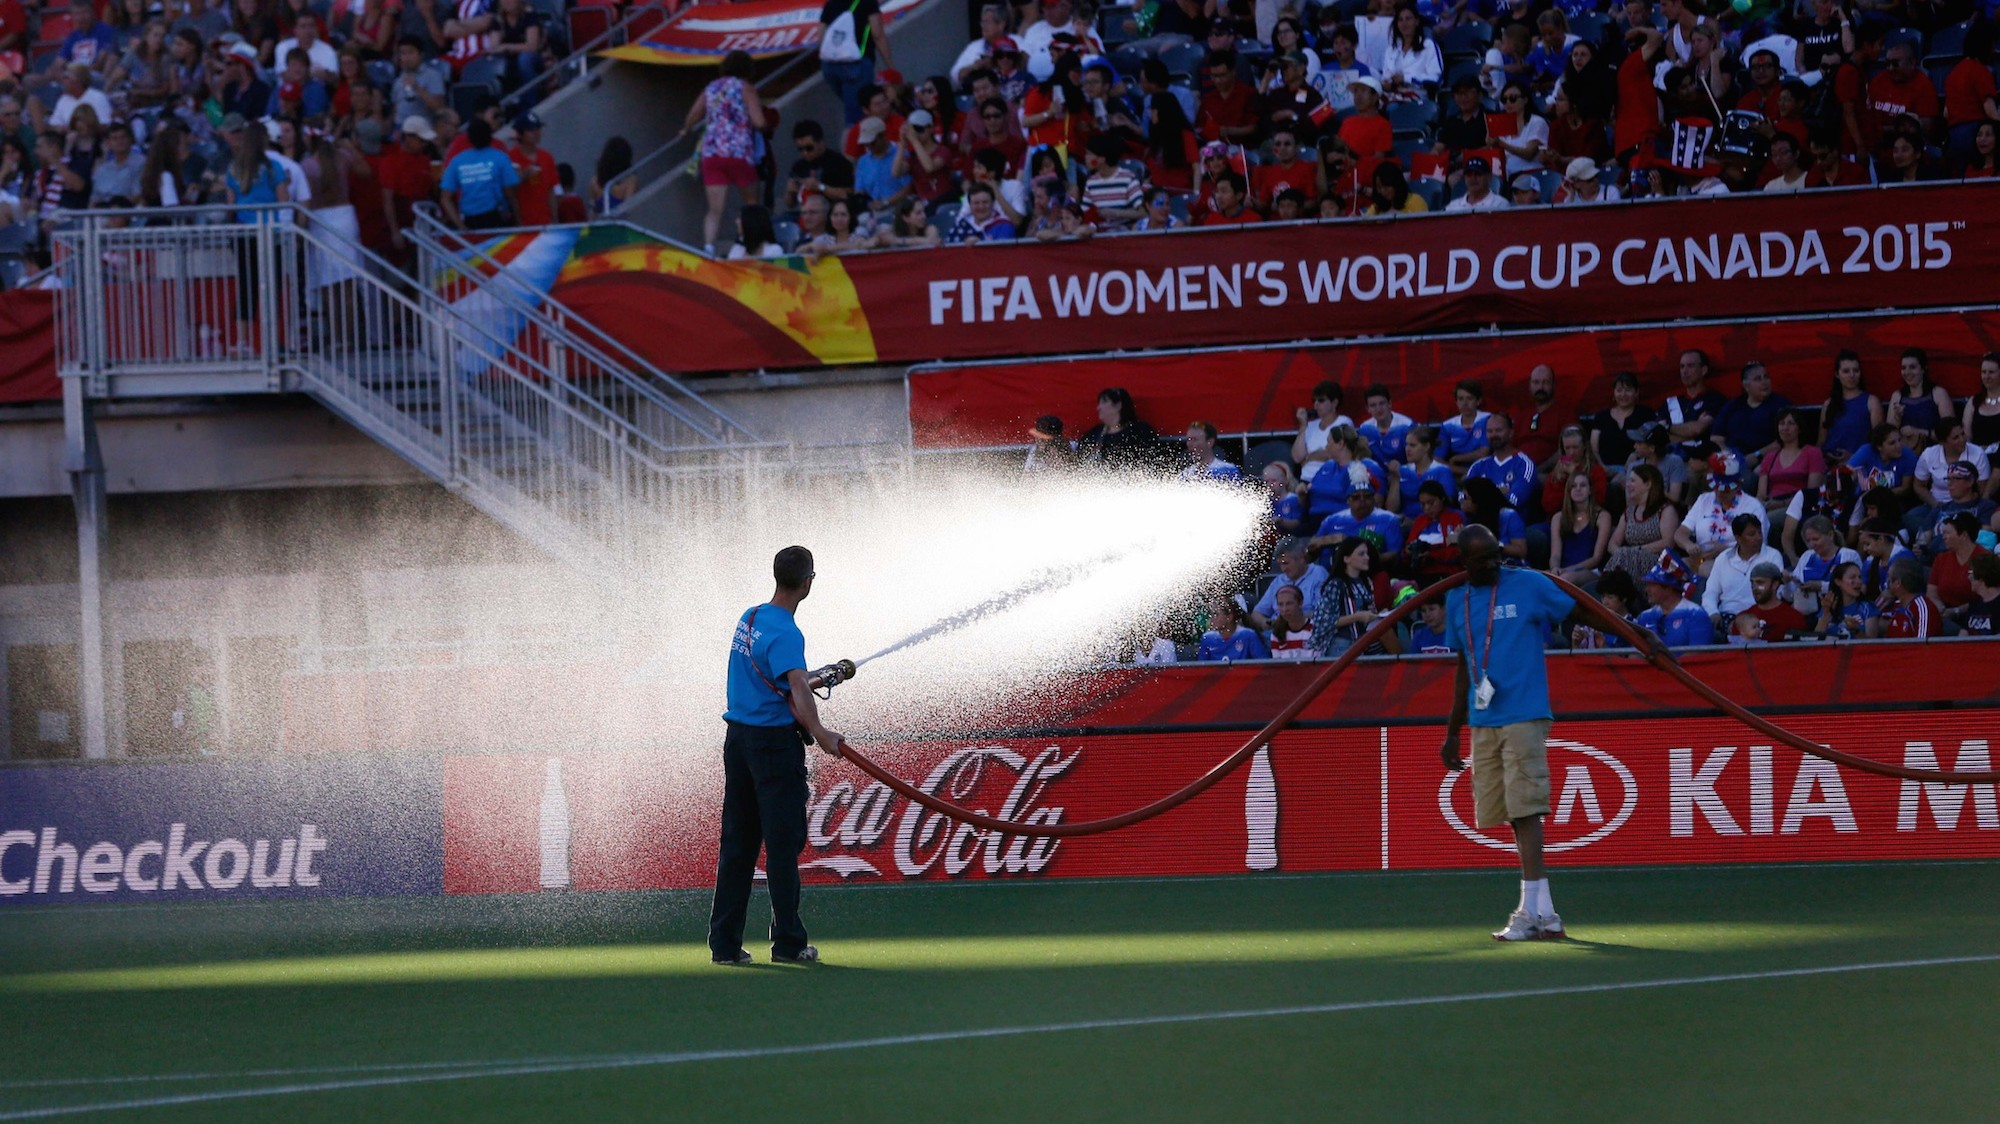 Canadian Soccer's Stance on Grass For Men vs. Turf For Women Leaves More Questions Than Answers